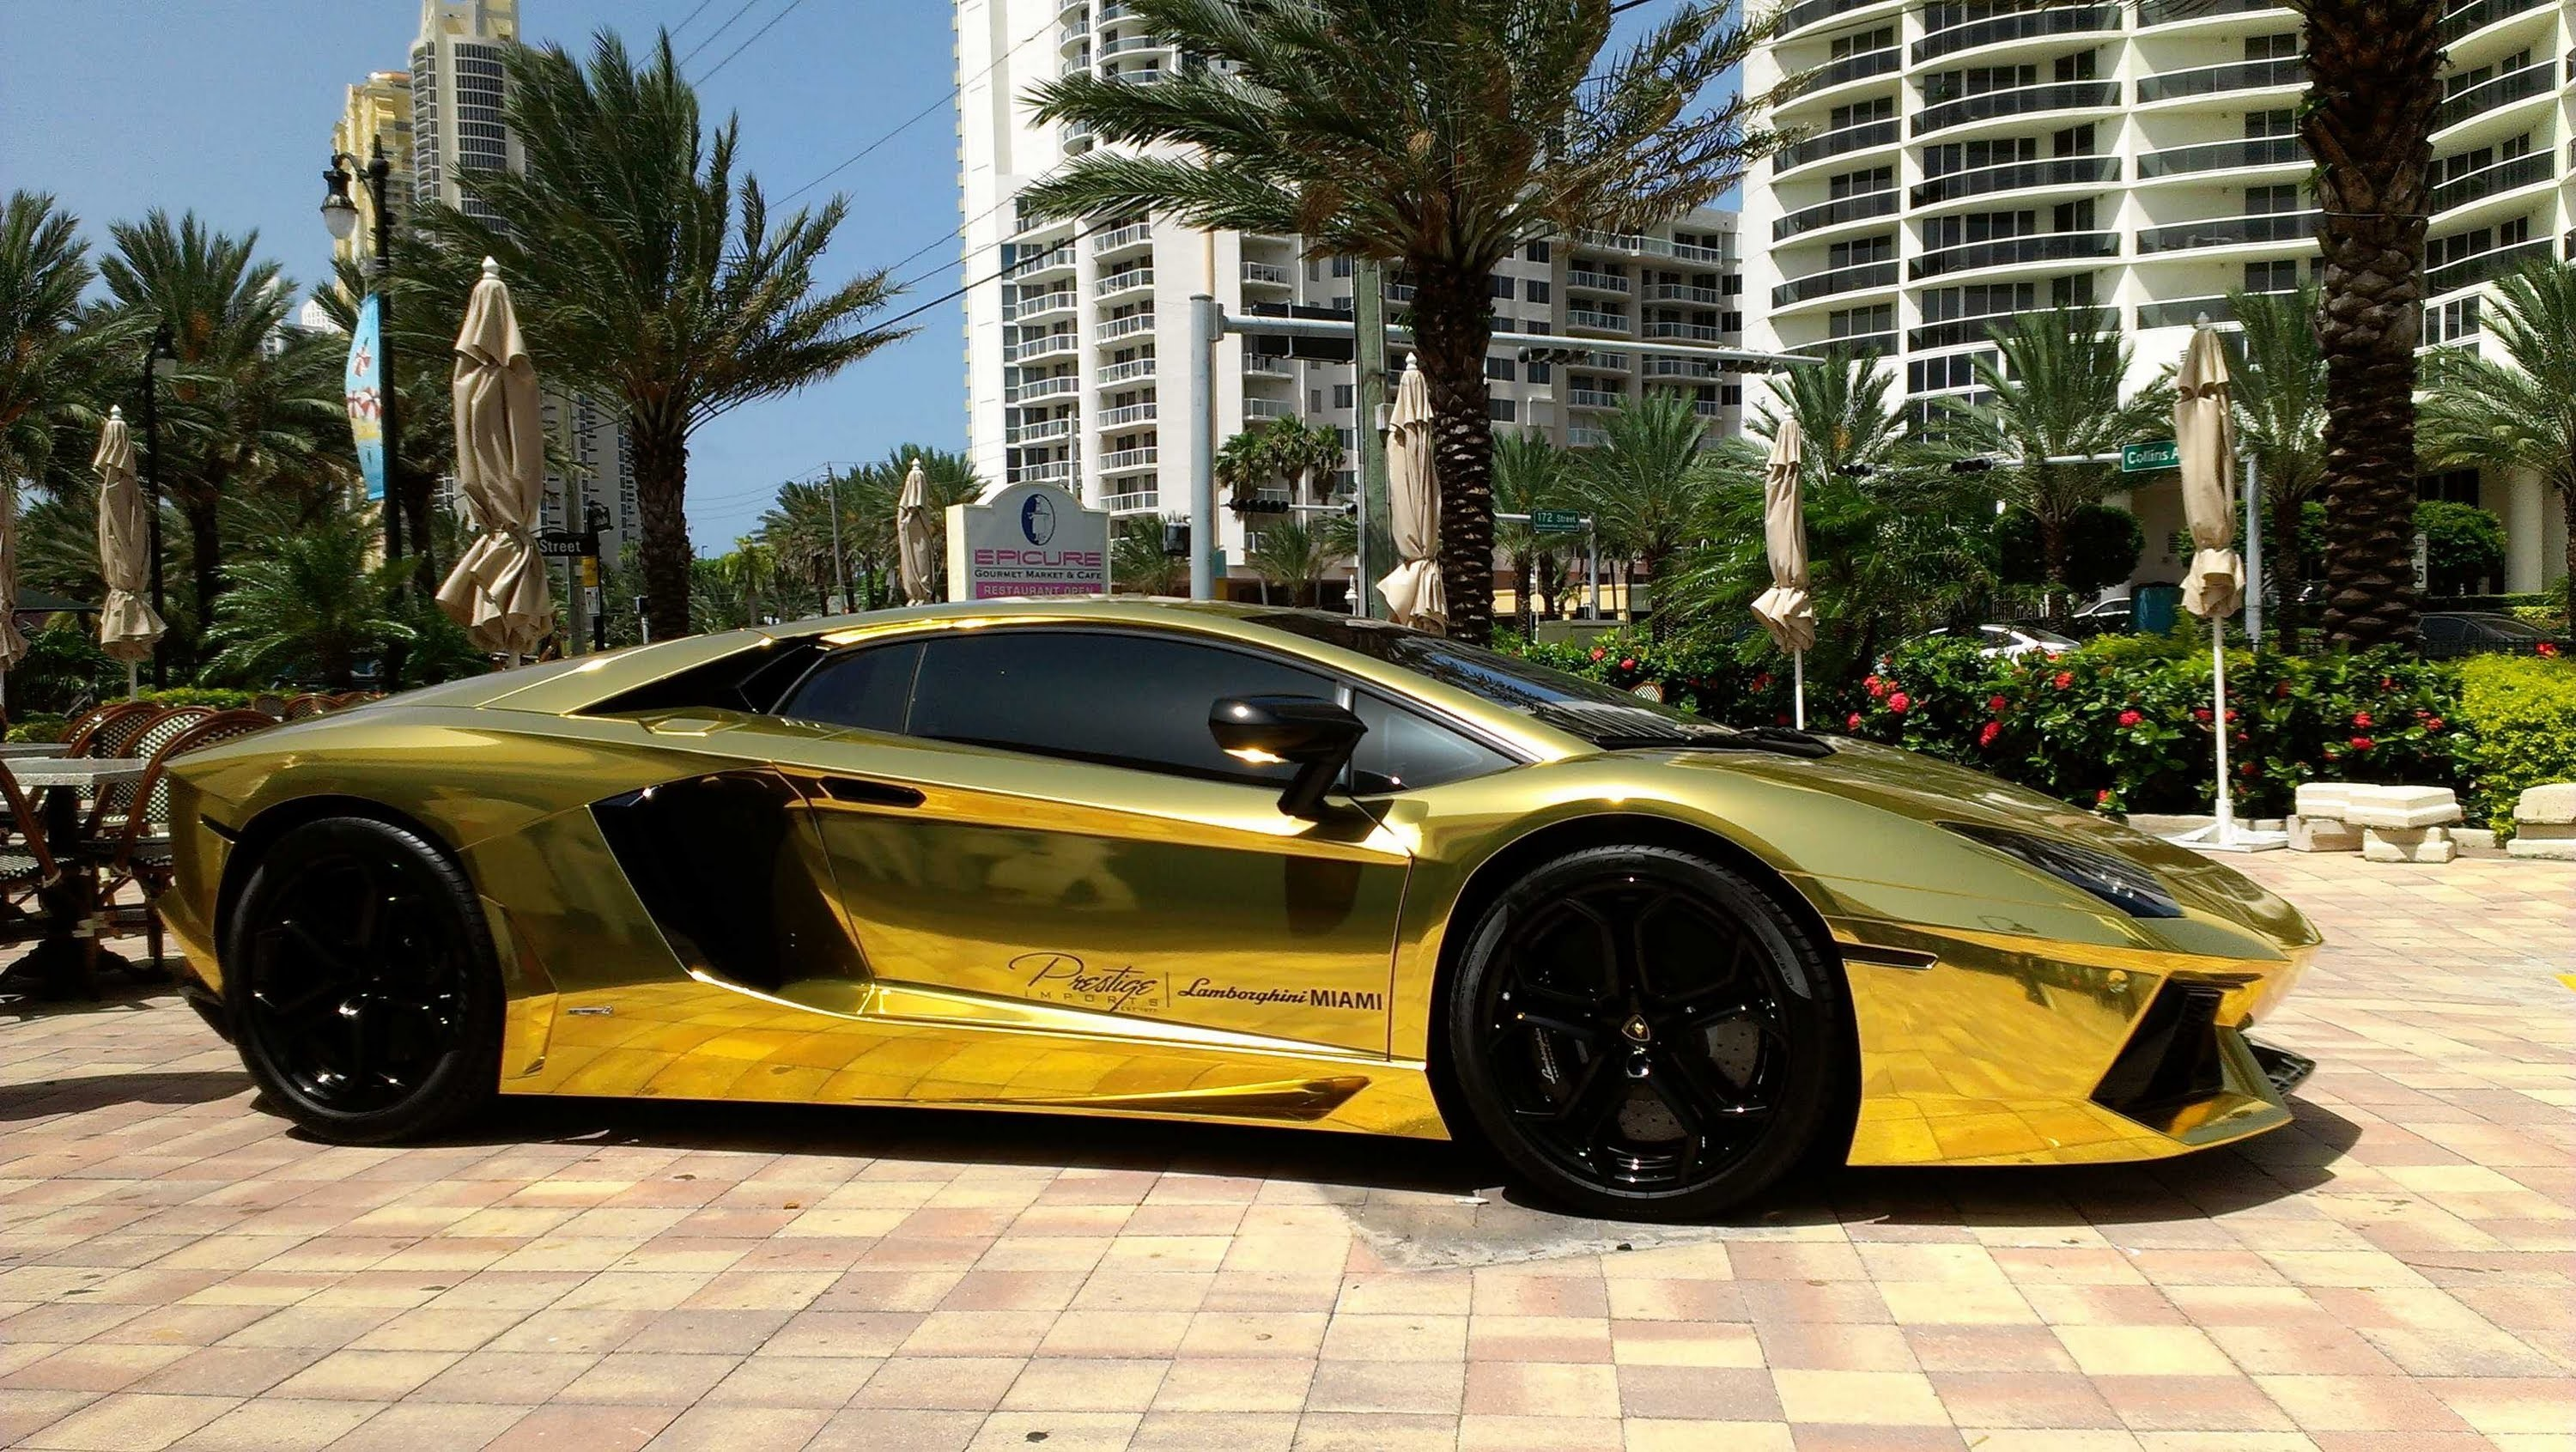 Res: 3000x1691, First Gold Plated Lamborghini Aventador LP700-4 Better only Lamborghini  Veneno,Lamborghini Egoista - YouTube